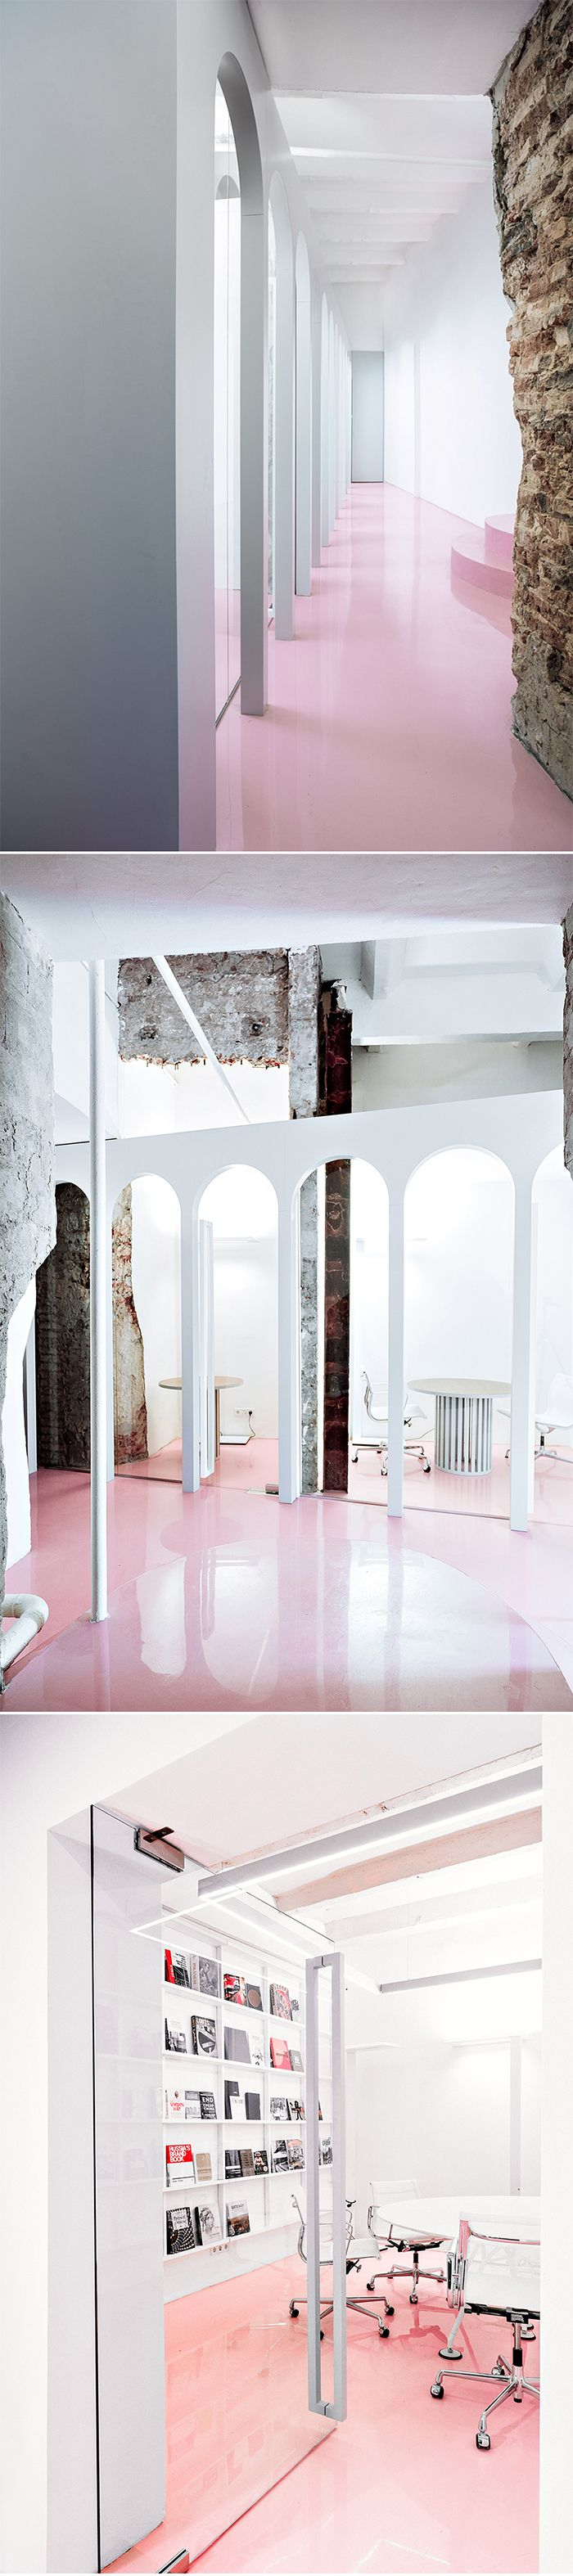 NGRS Recruiting Company HQ http://thecoolhunter.net/ngrs-recruiting-company-hq/